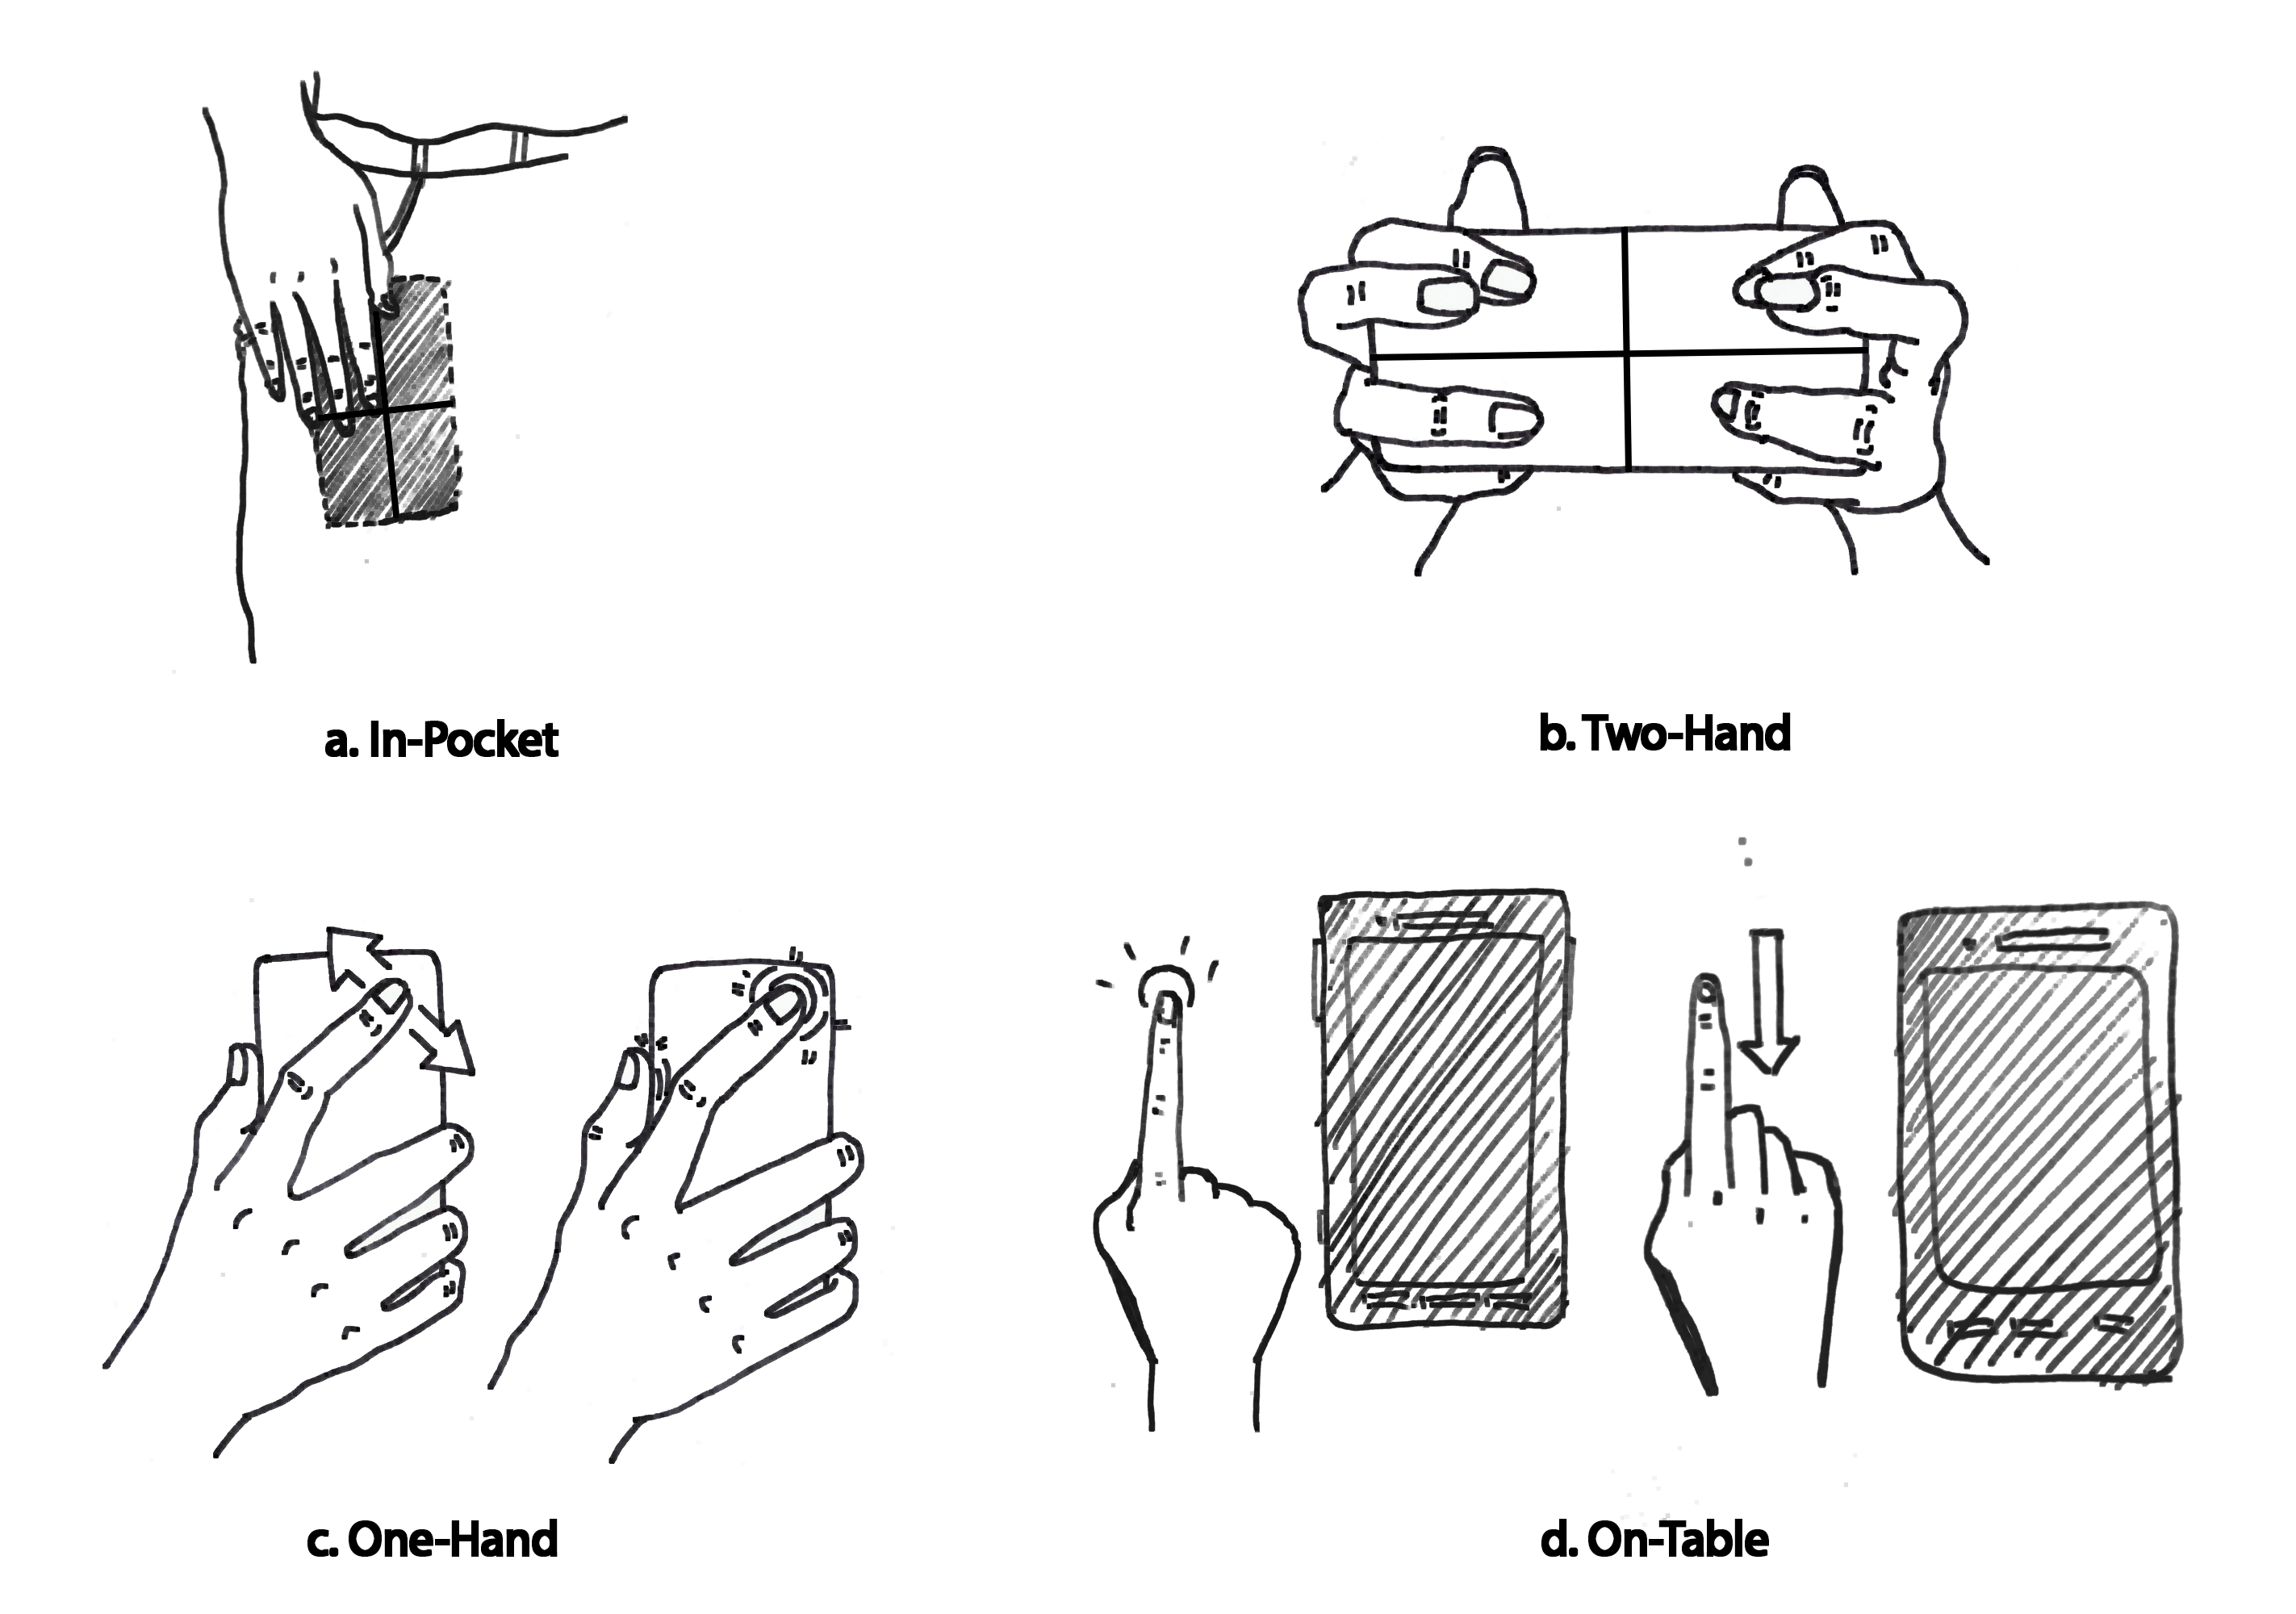 Four BeyondTouch interaction techniques, including tapping on a phone in the pocket, tapping on the back of a phone while holding it with two hands, tapping and sliding on the back of the phone while holding it with one hand, as well as tapping and sliding next to the phone on the table to control the device.